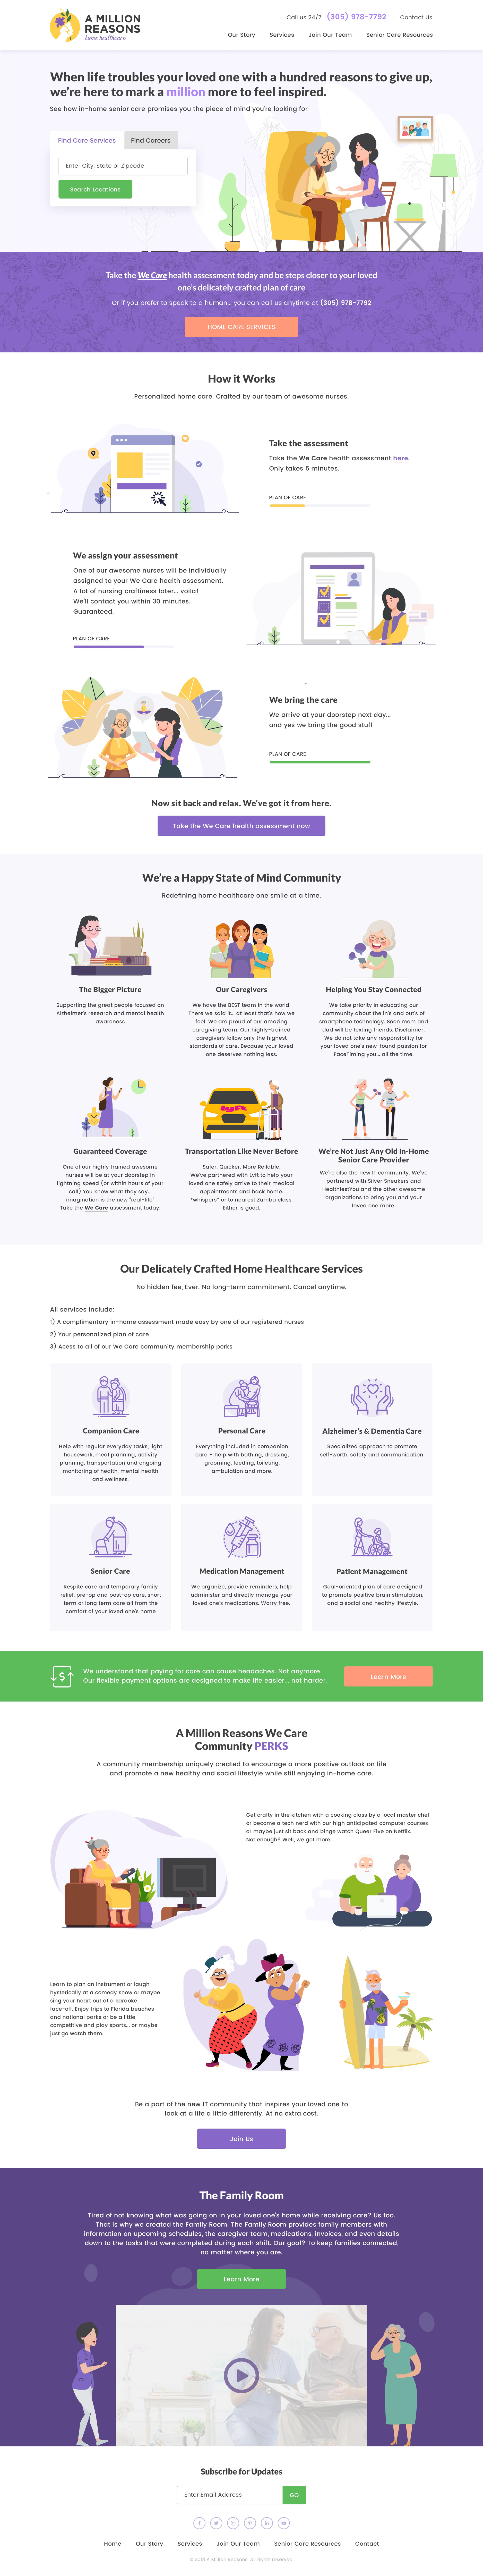 Website and landing page design for home healthcare business in South Florida